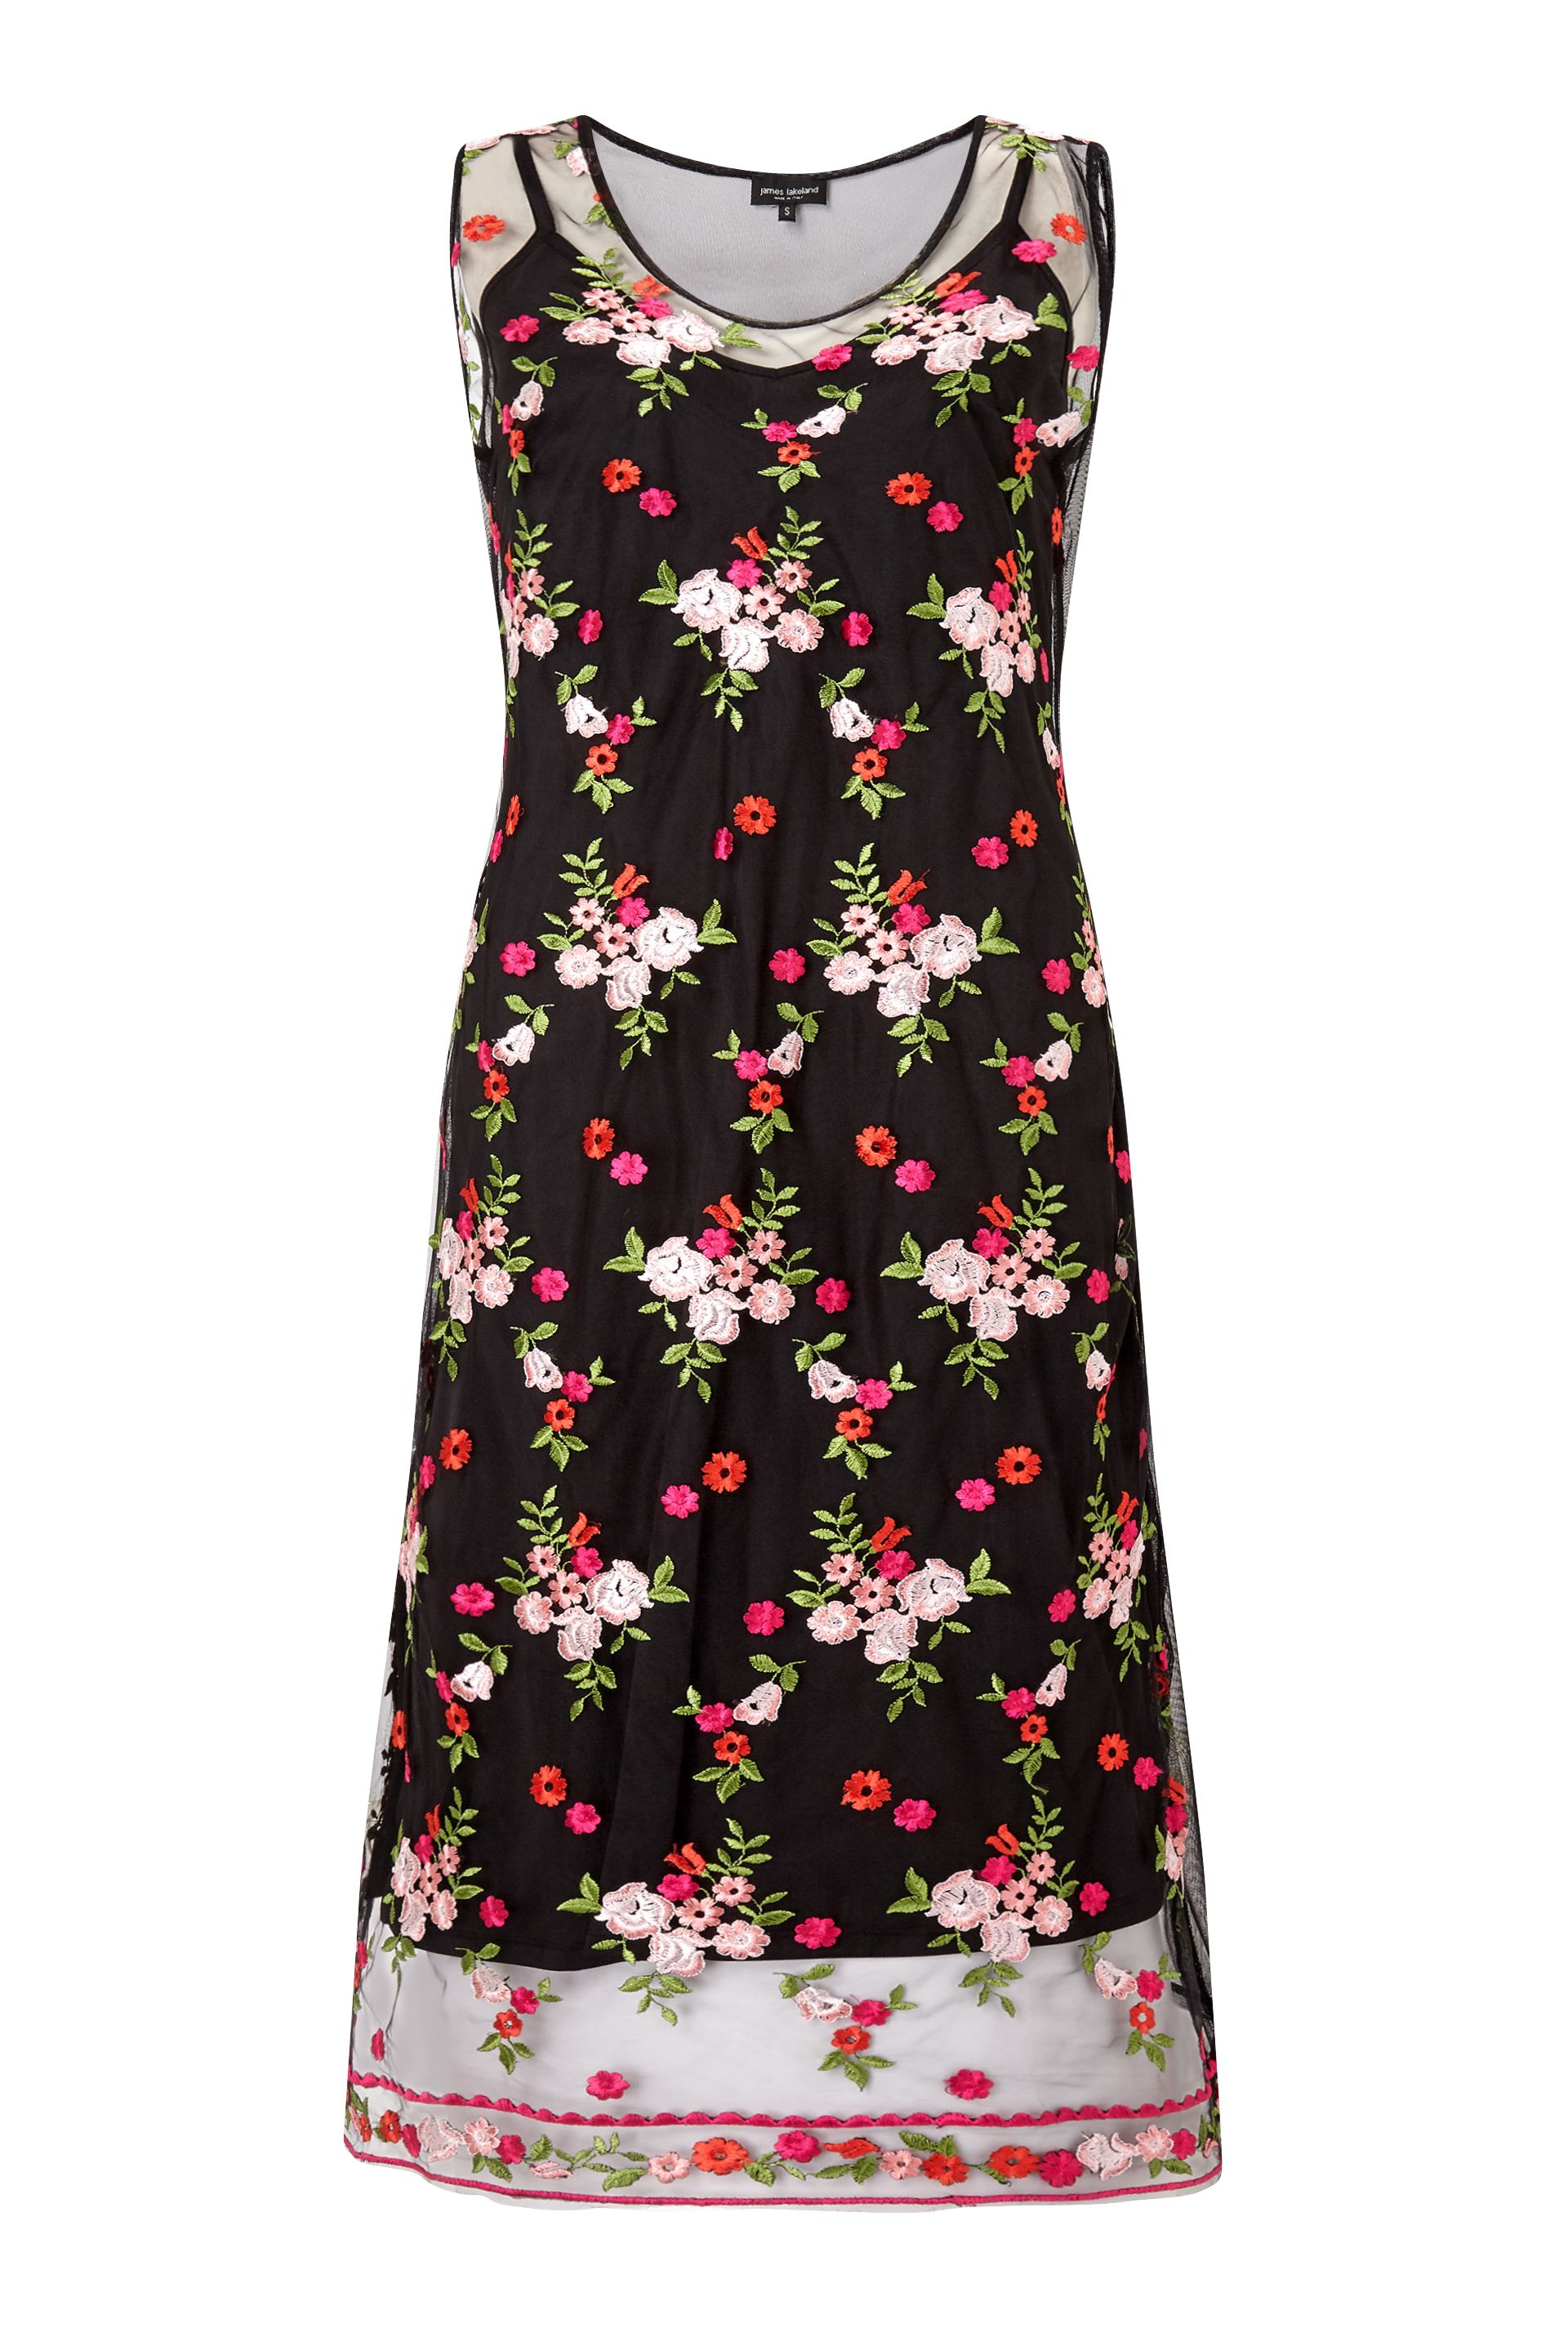 James Lakeland Embroidered Midi Dress, Black